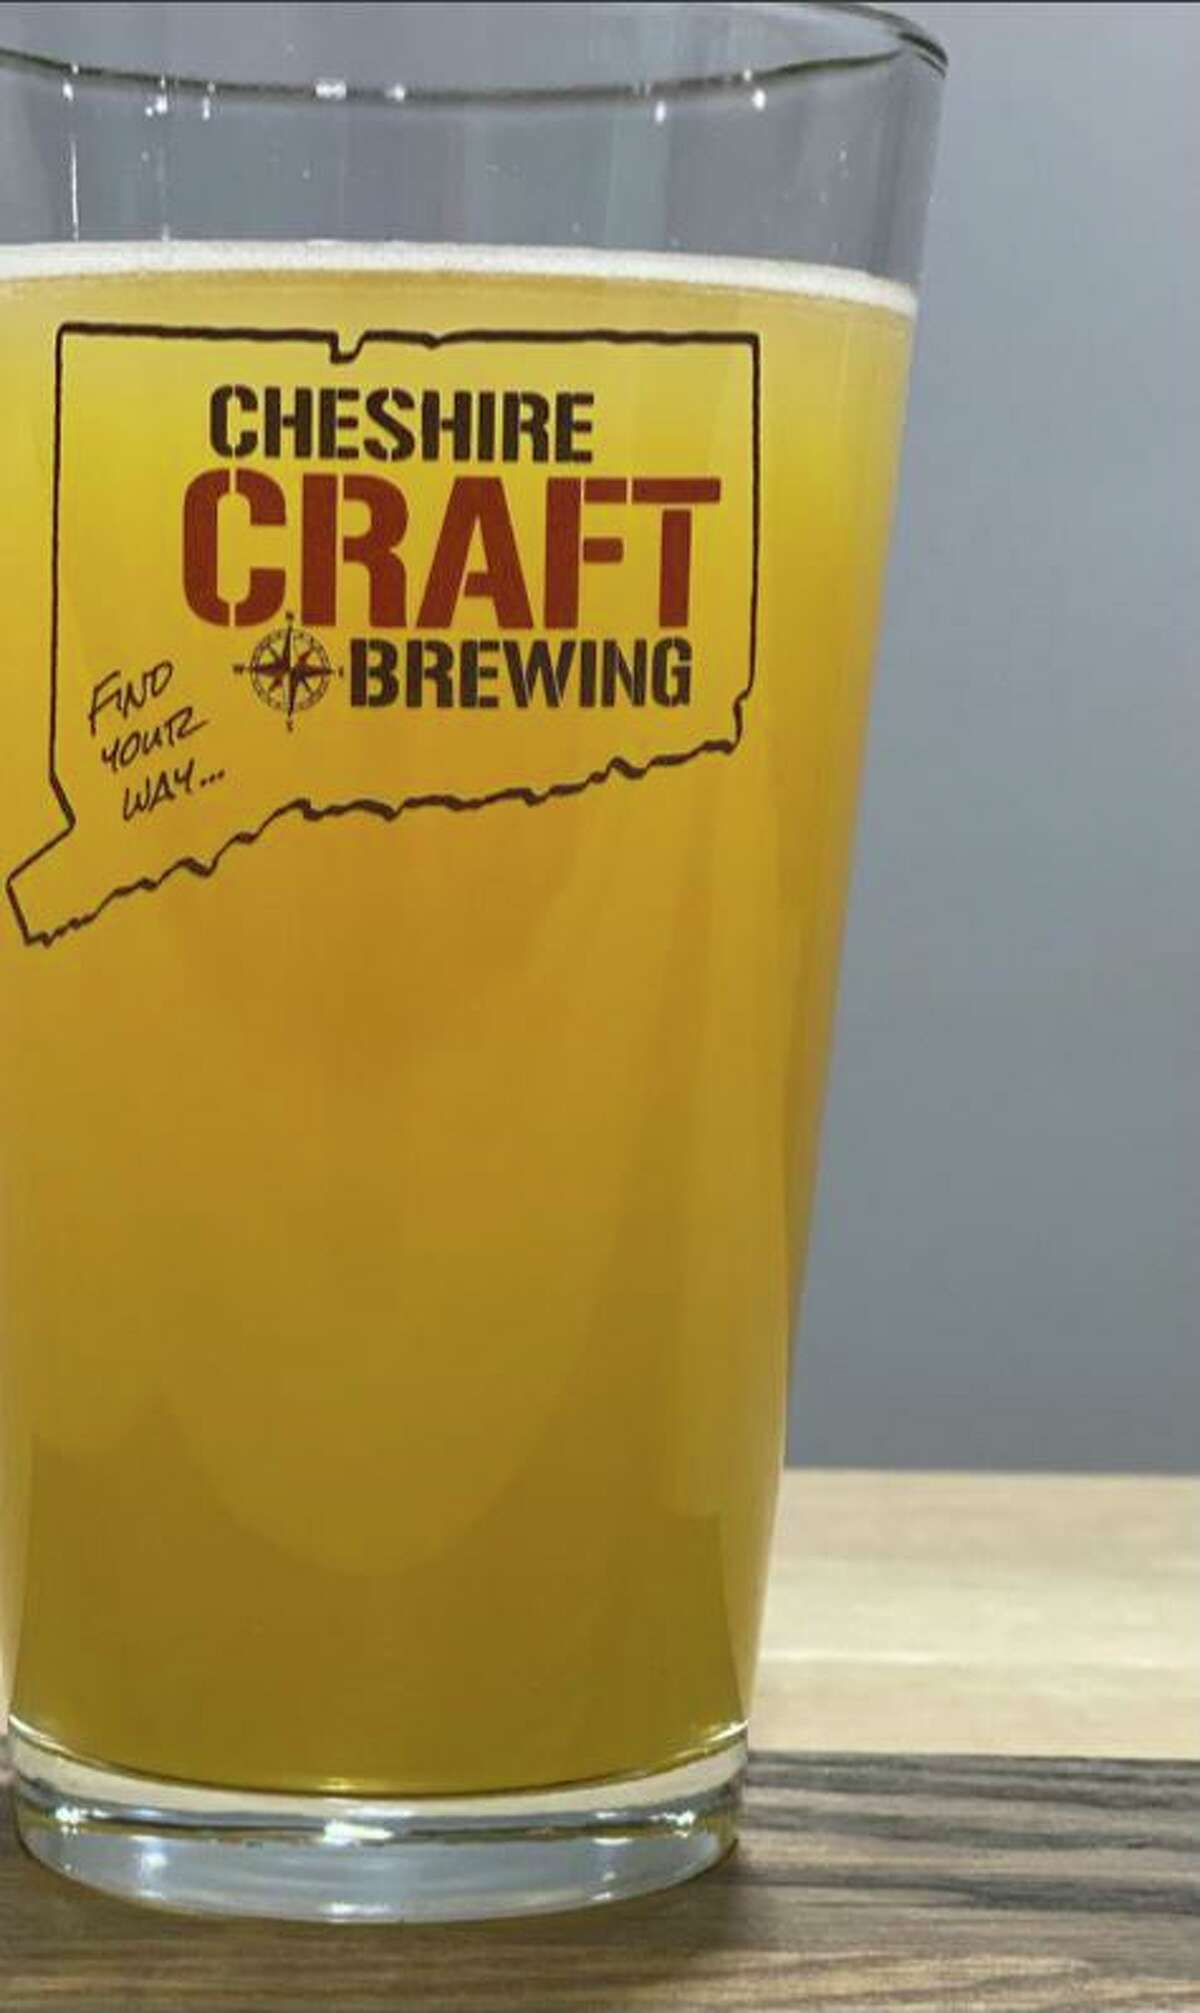 A glass of Cheshire Craft Brewing's beer. The business is expected to open to the general public later this spring.